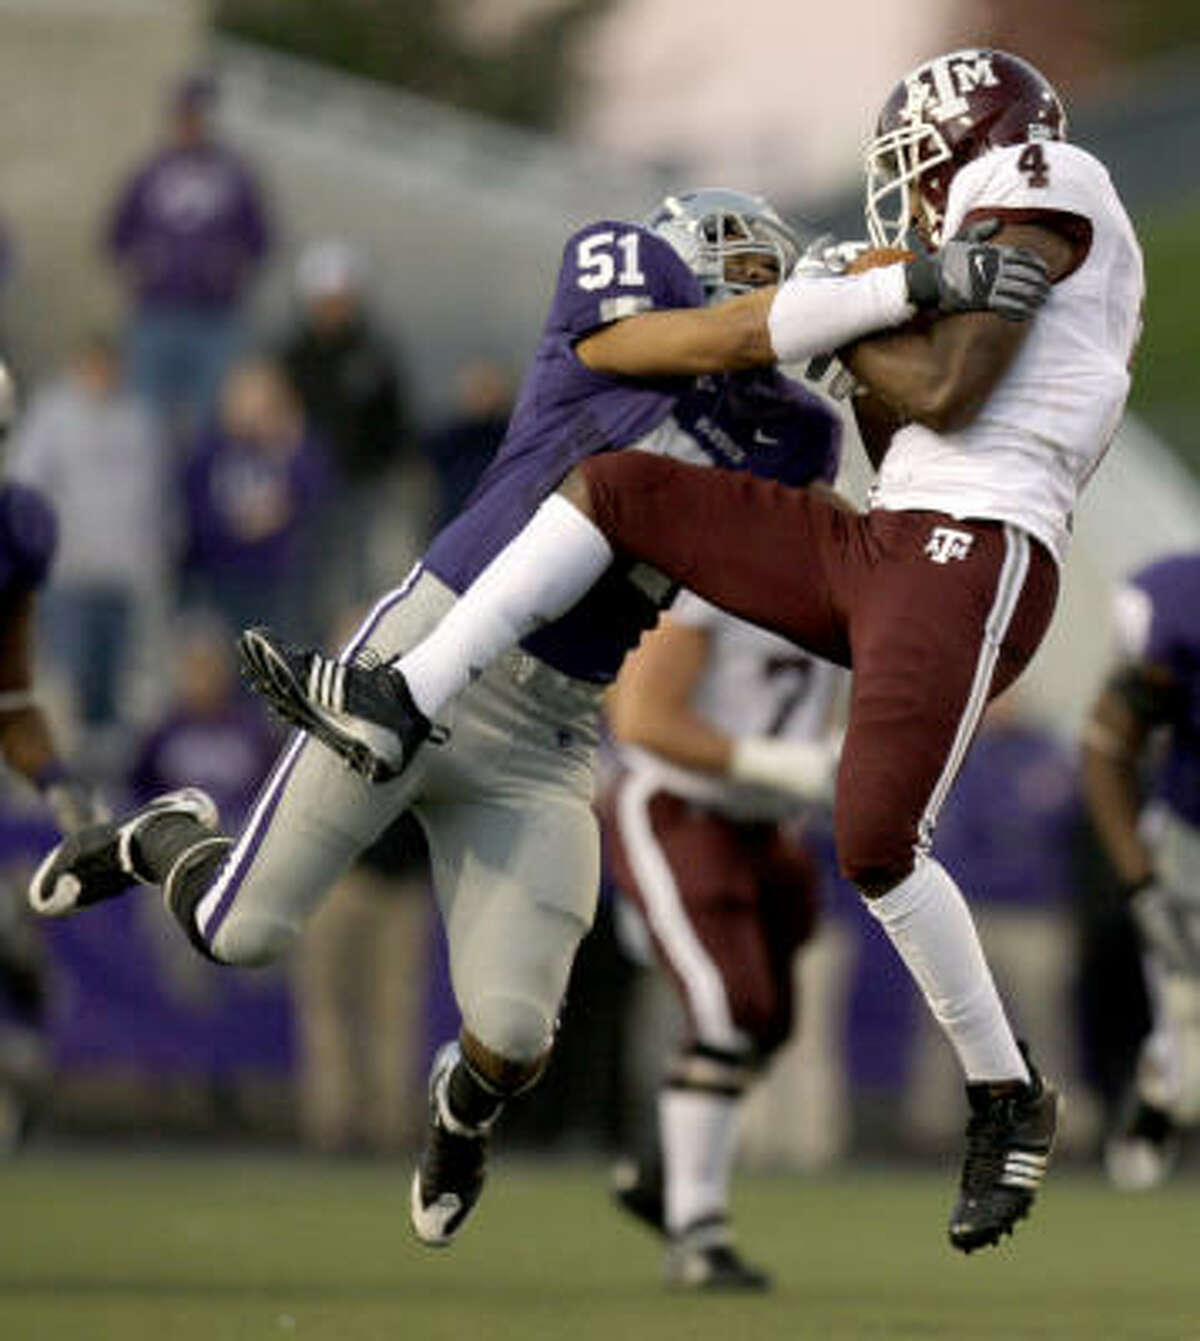 Texas A&M tight end Jamie McCoy catches a pass under pressure from Kansas State linebacker Ulla Pomele during the Wildcats' rout of the Aggies on Saturday night in Manhattan, Kan.